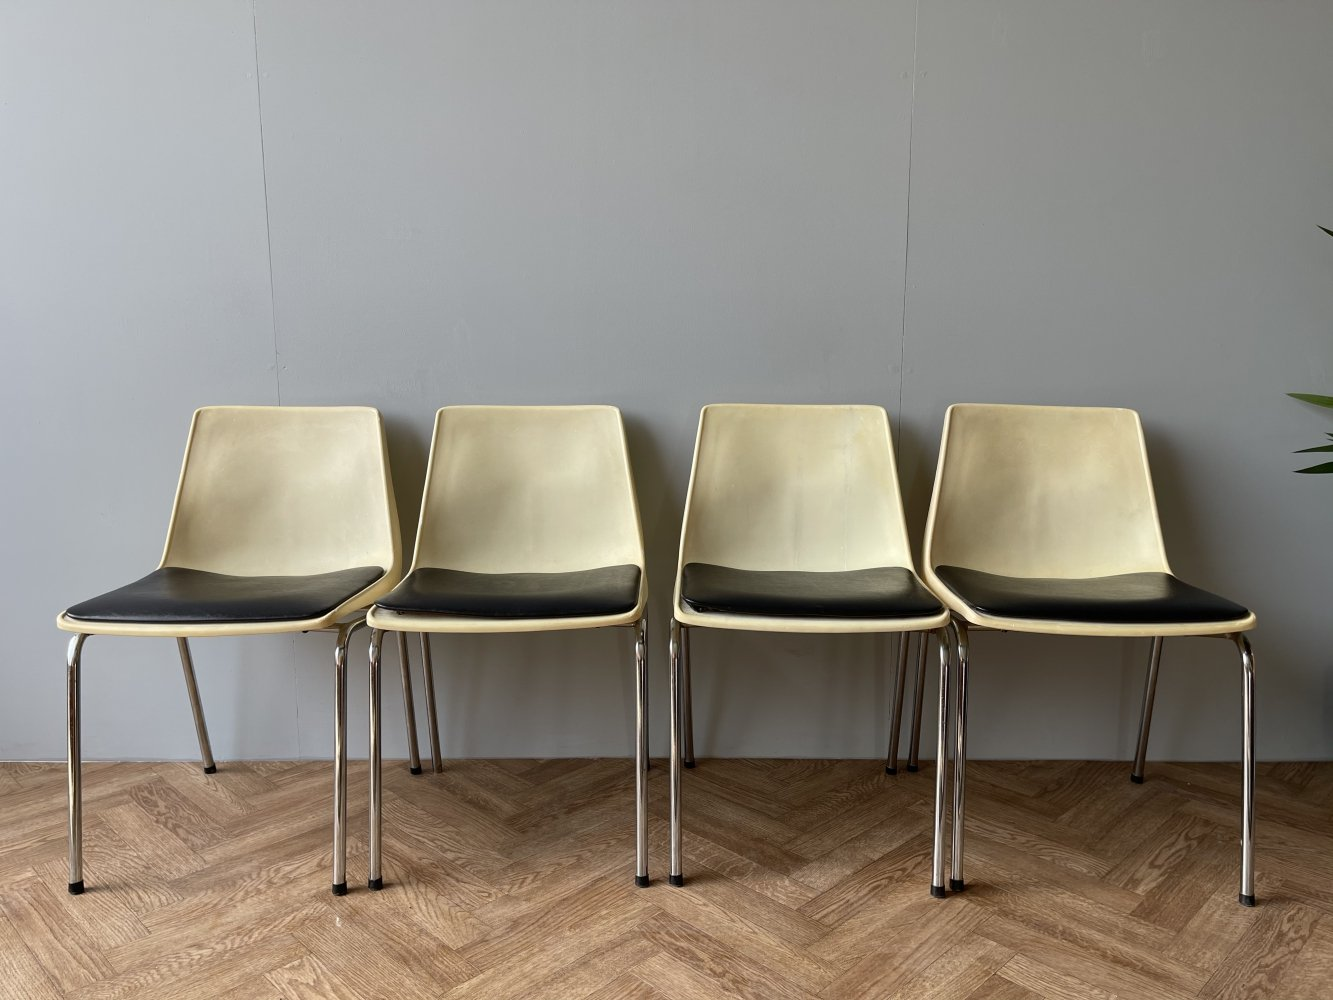 Set of 4 Robin Day dining chairs by the Chair Centre for Hille International, 1970s